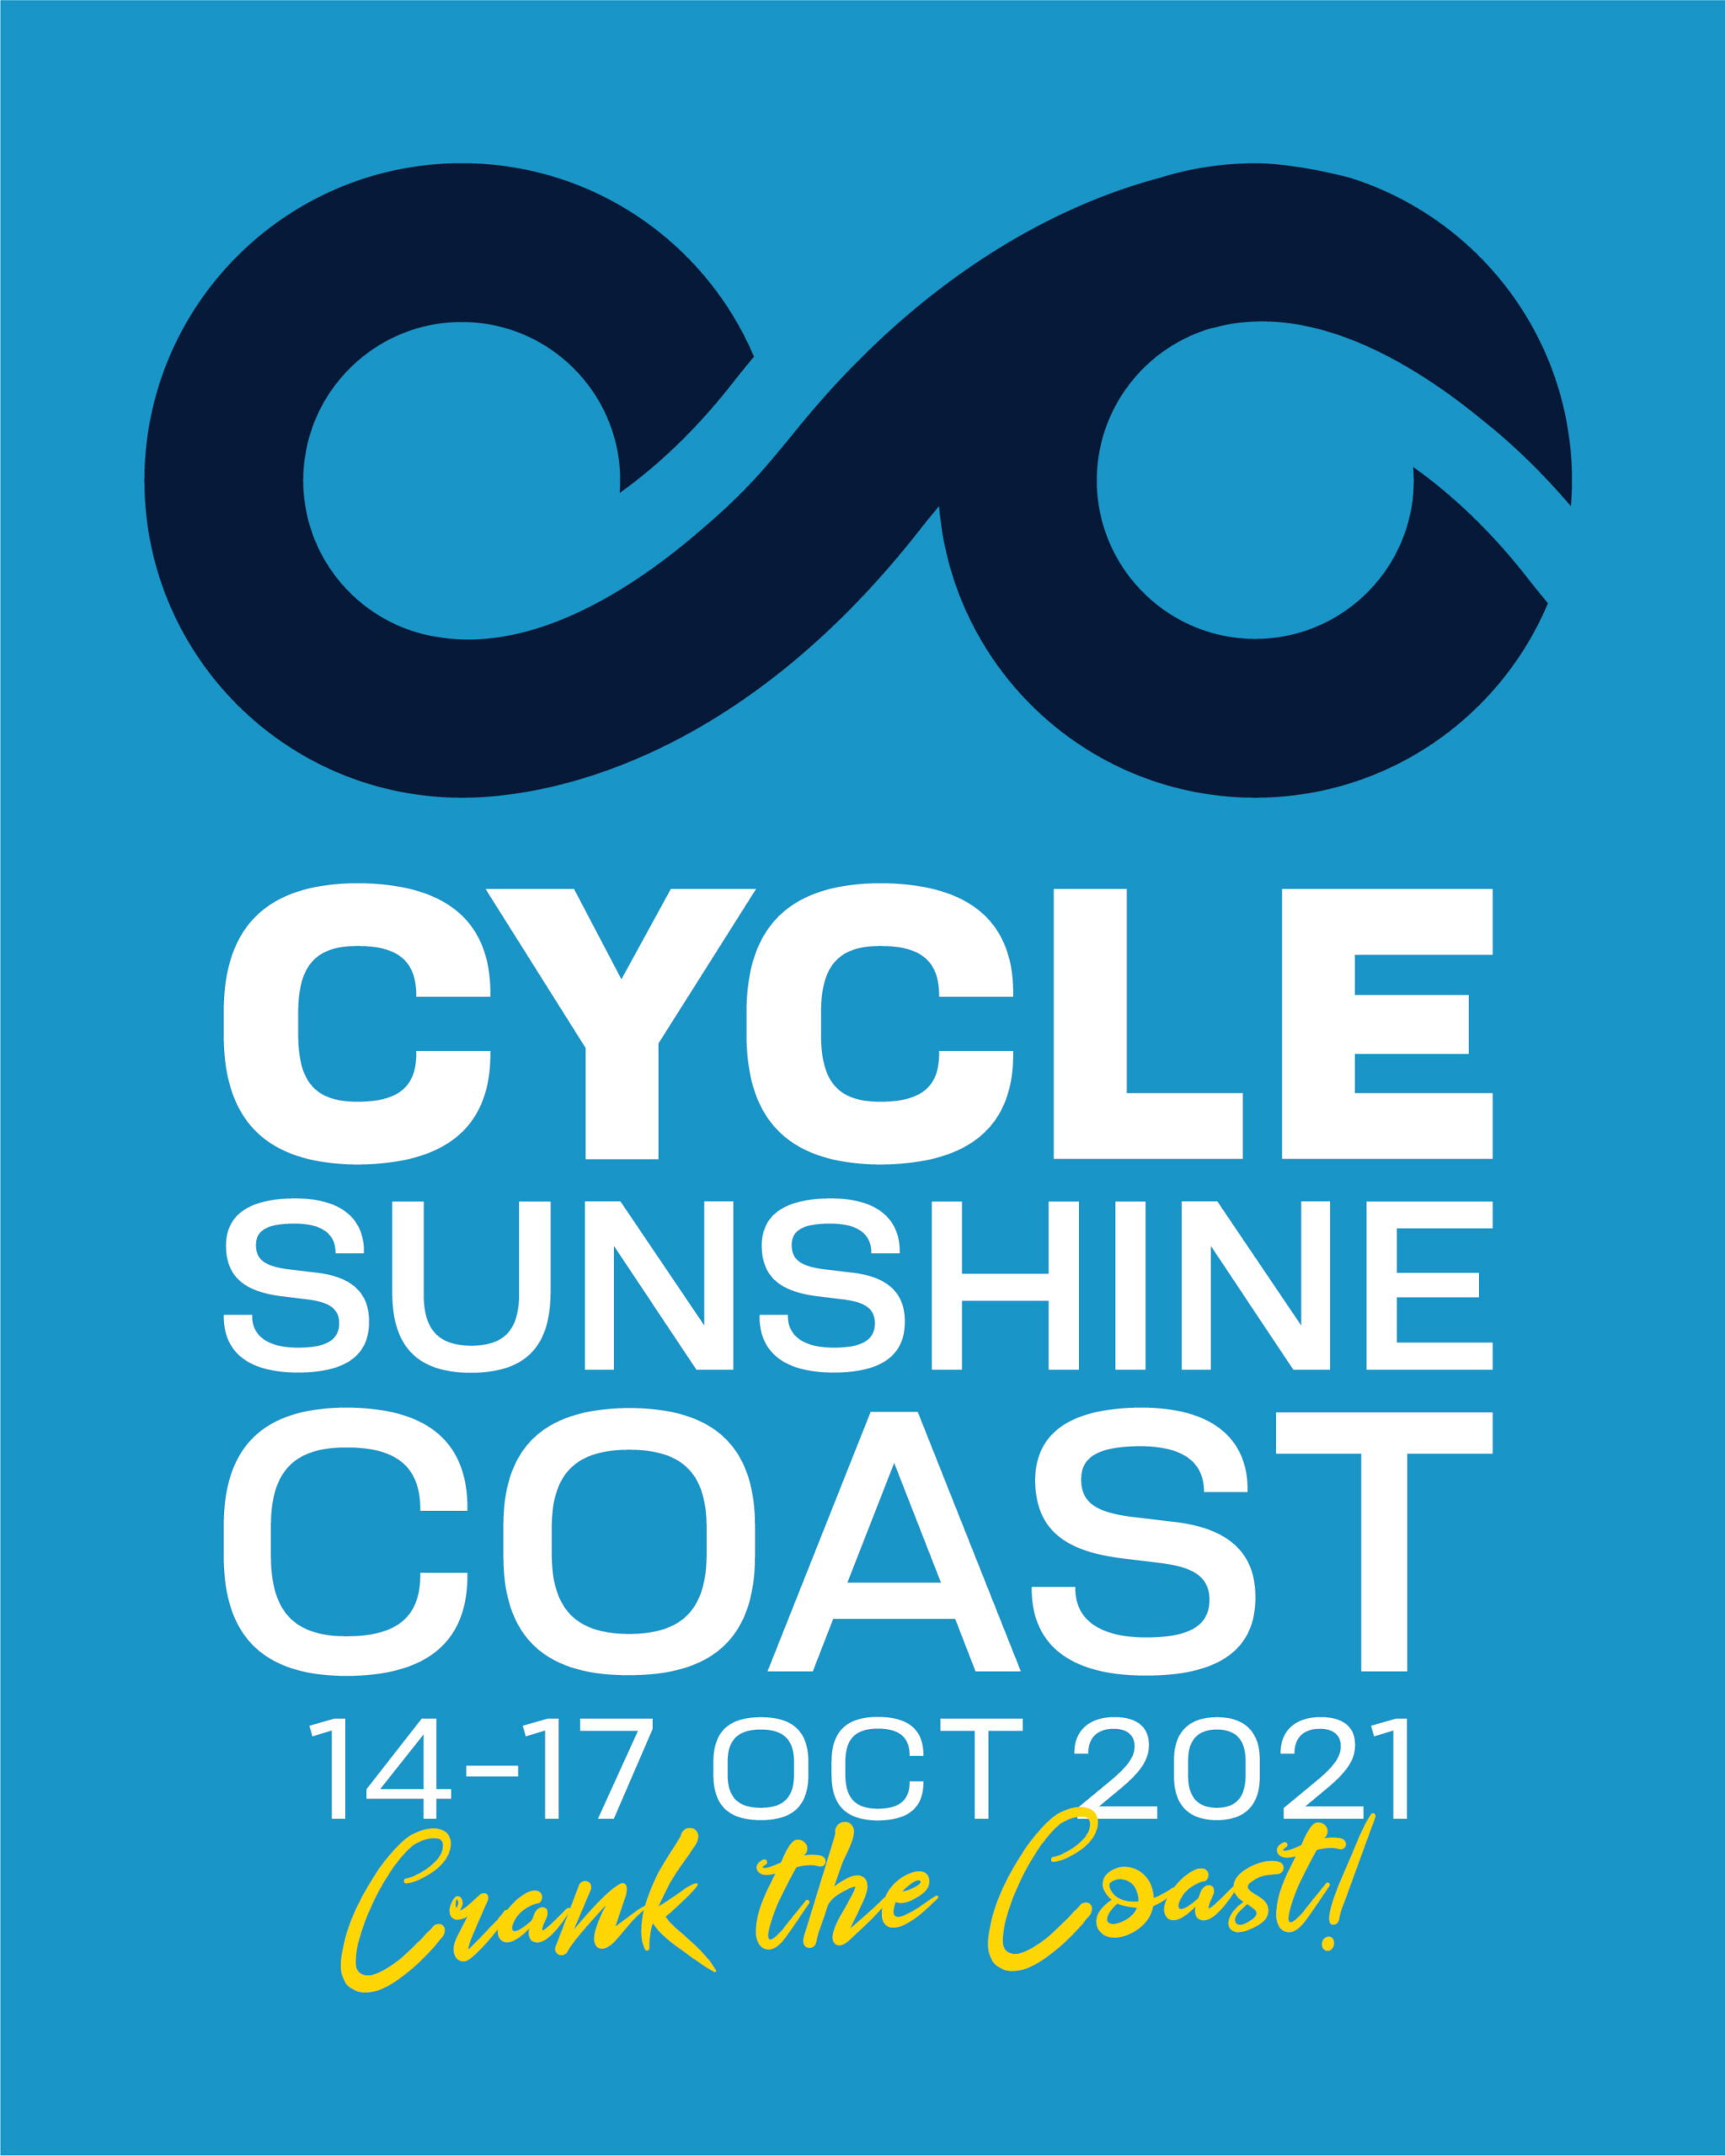 Cycle Sunshine Coast